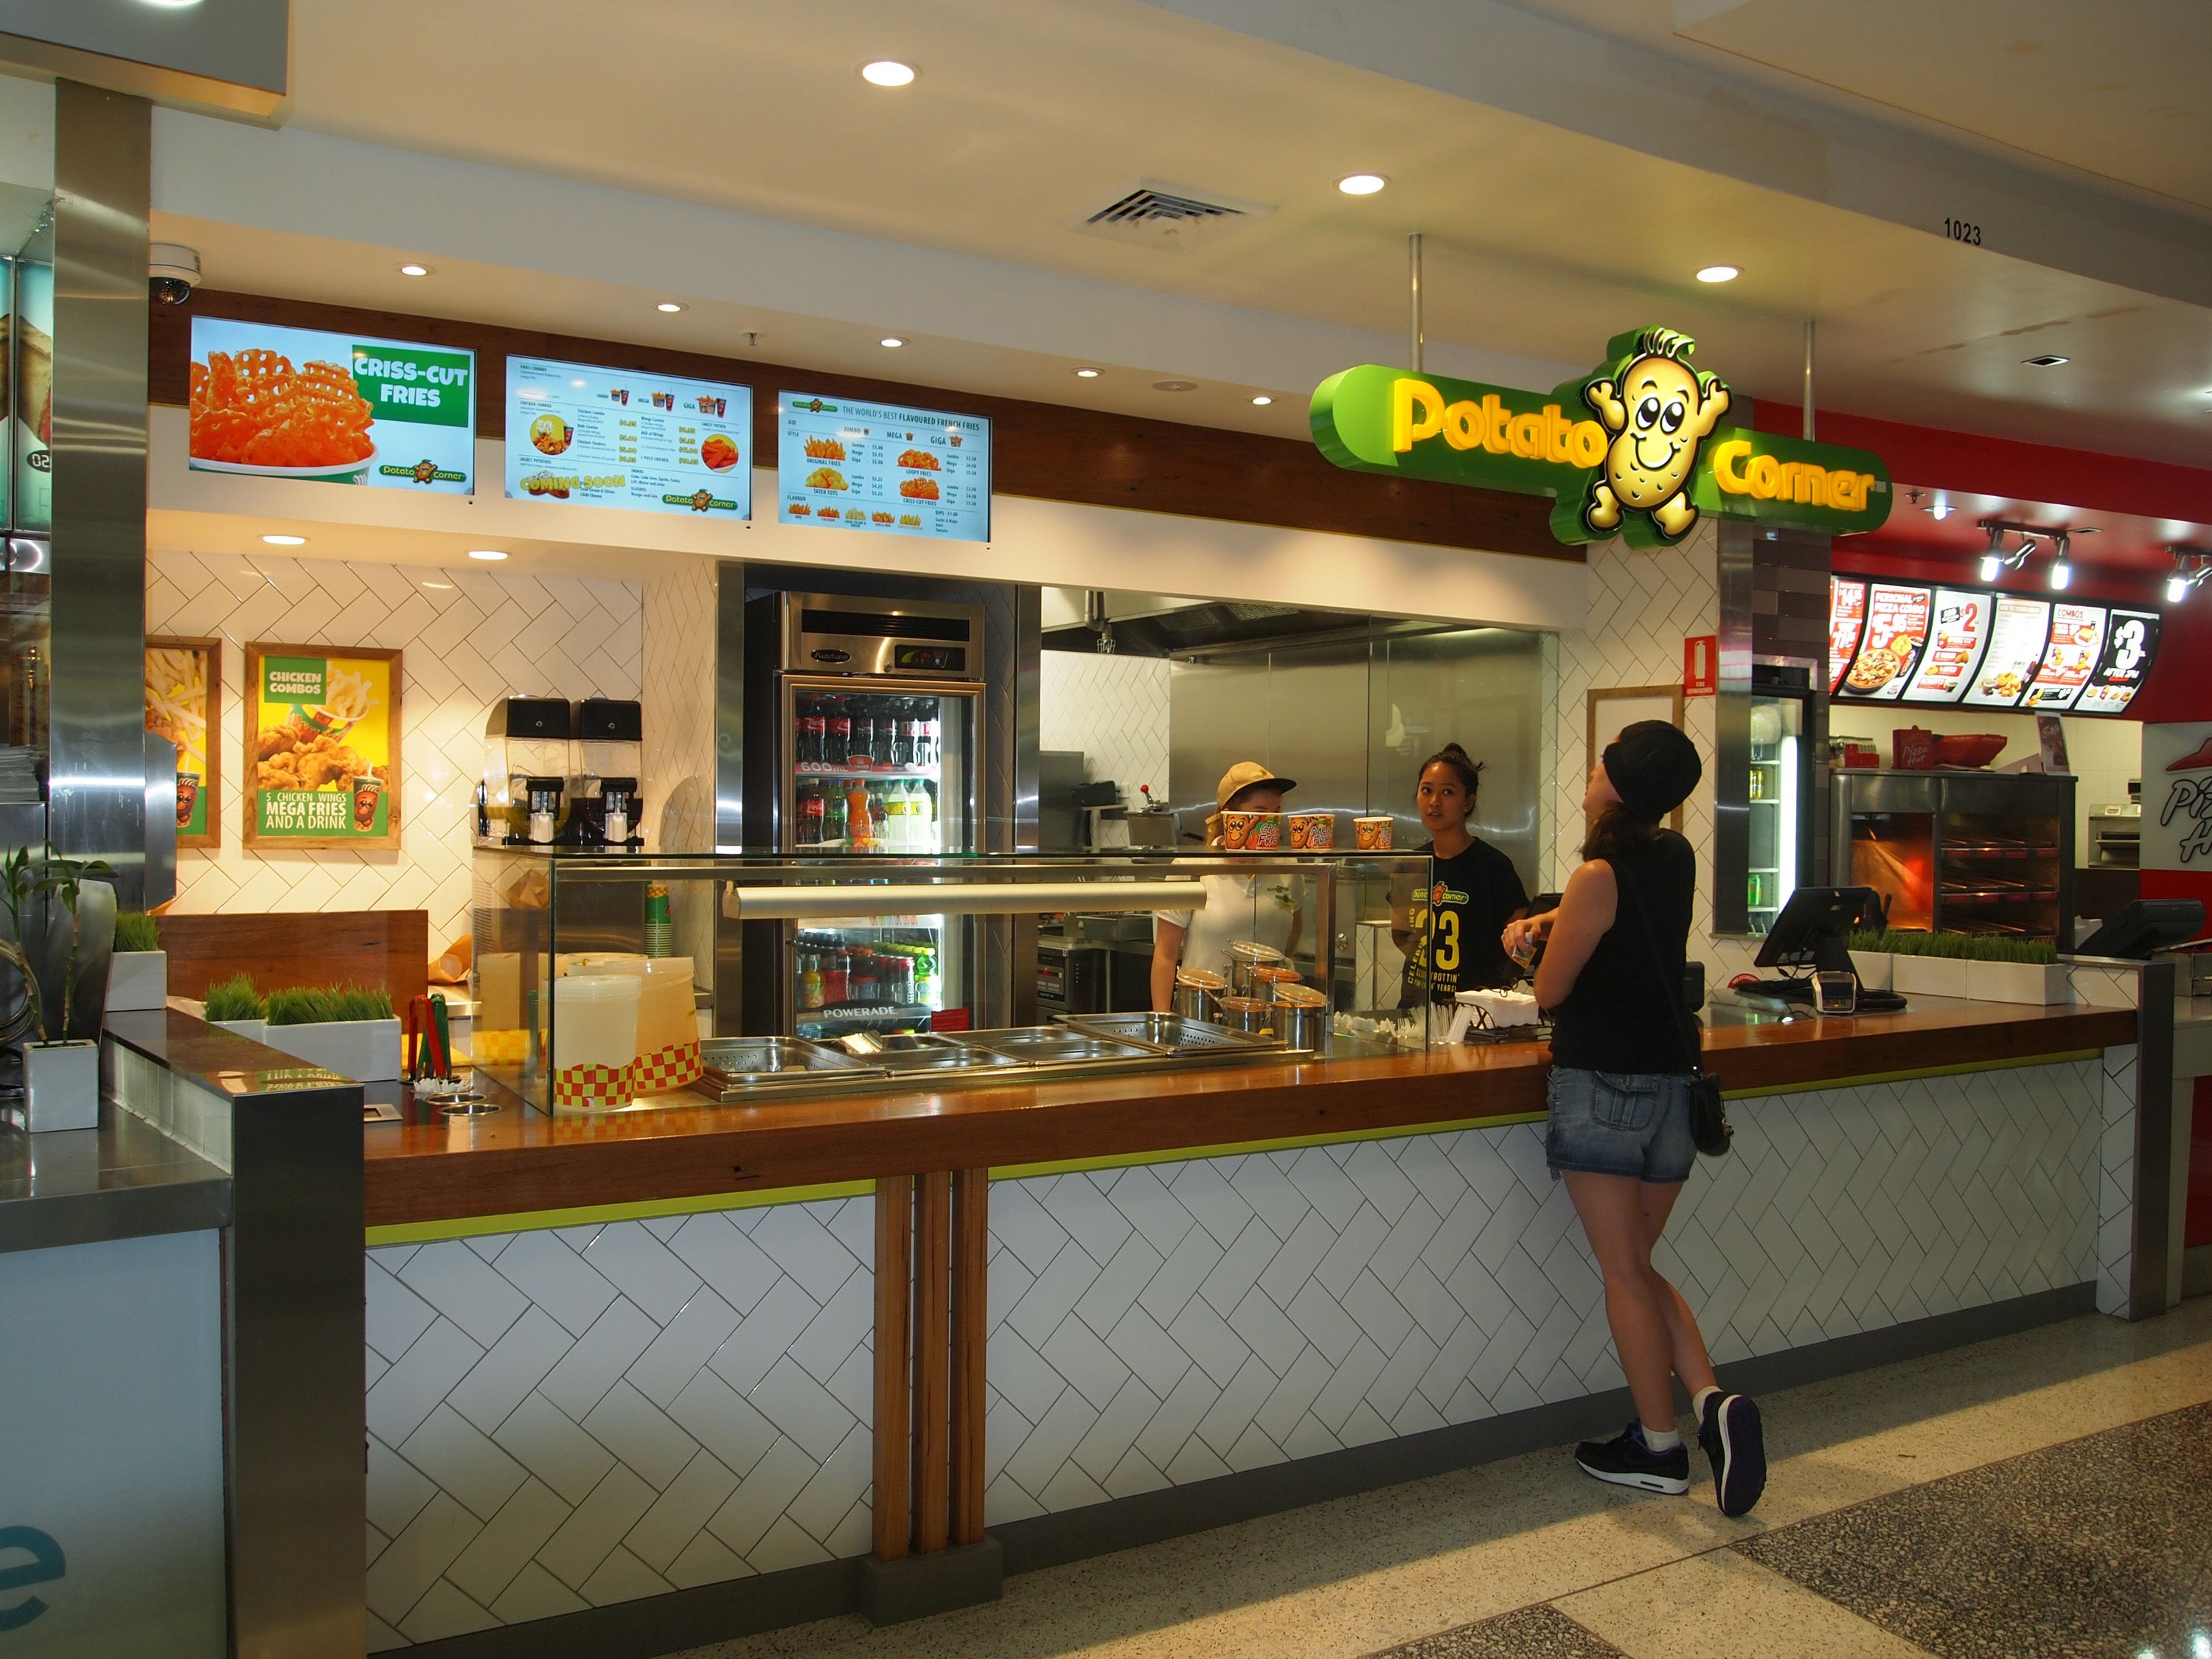 Scope Design A Potato And Chicken Fast Food Franchise To